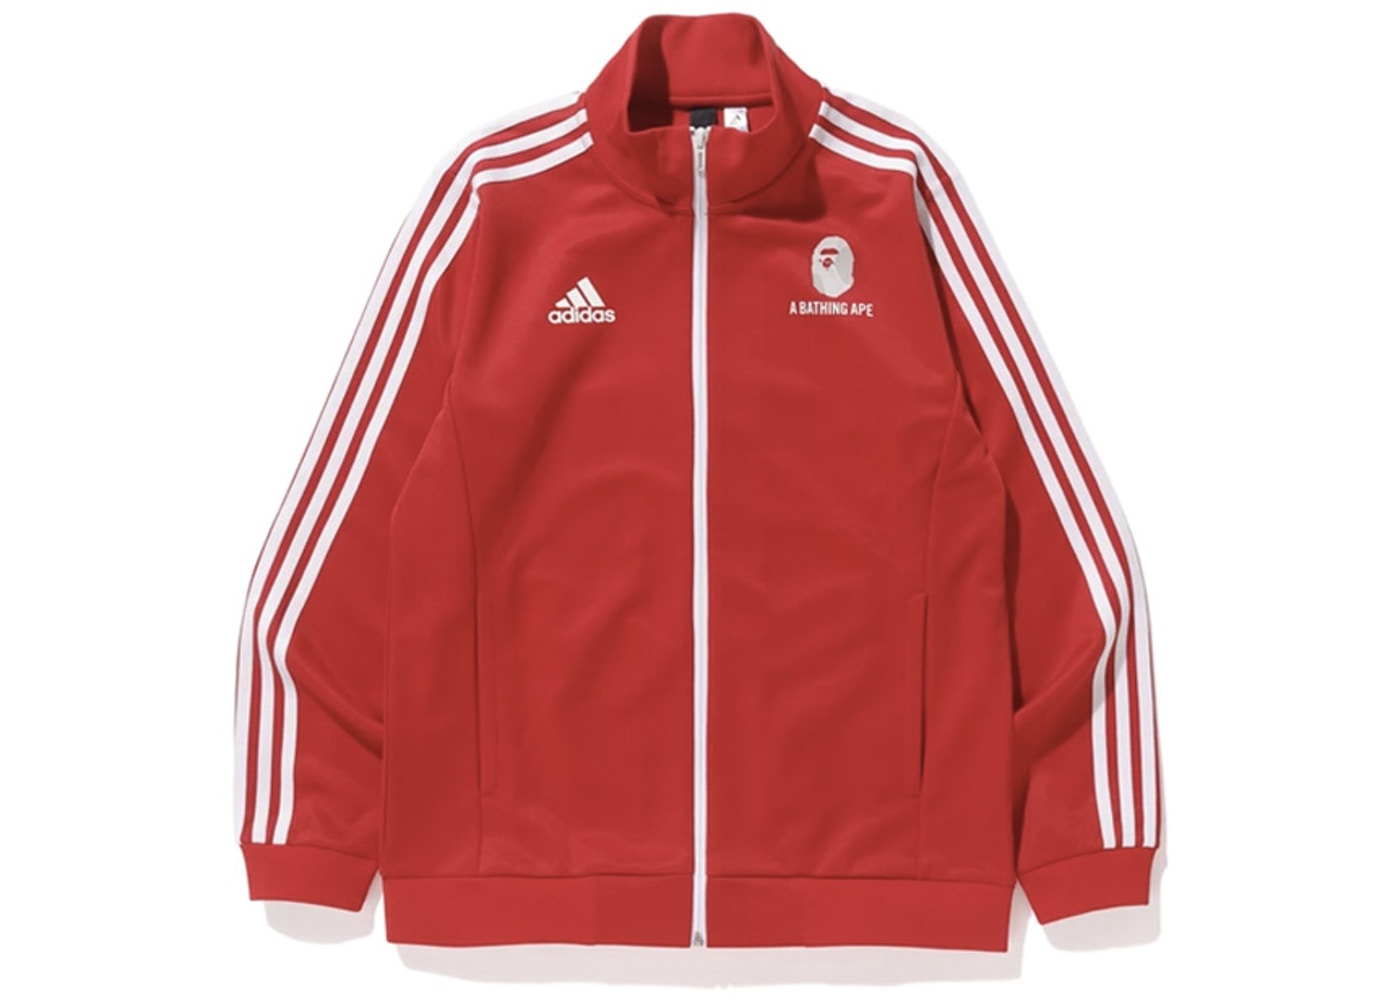 online retailer 9eeed 5eb0f x adidas World Cup 2018 Winning Collection Zip Up Track